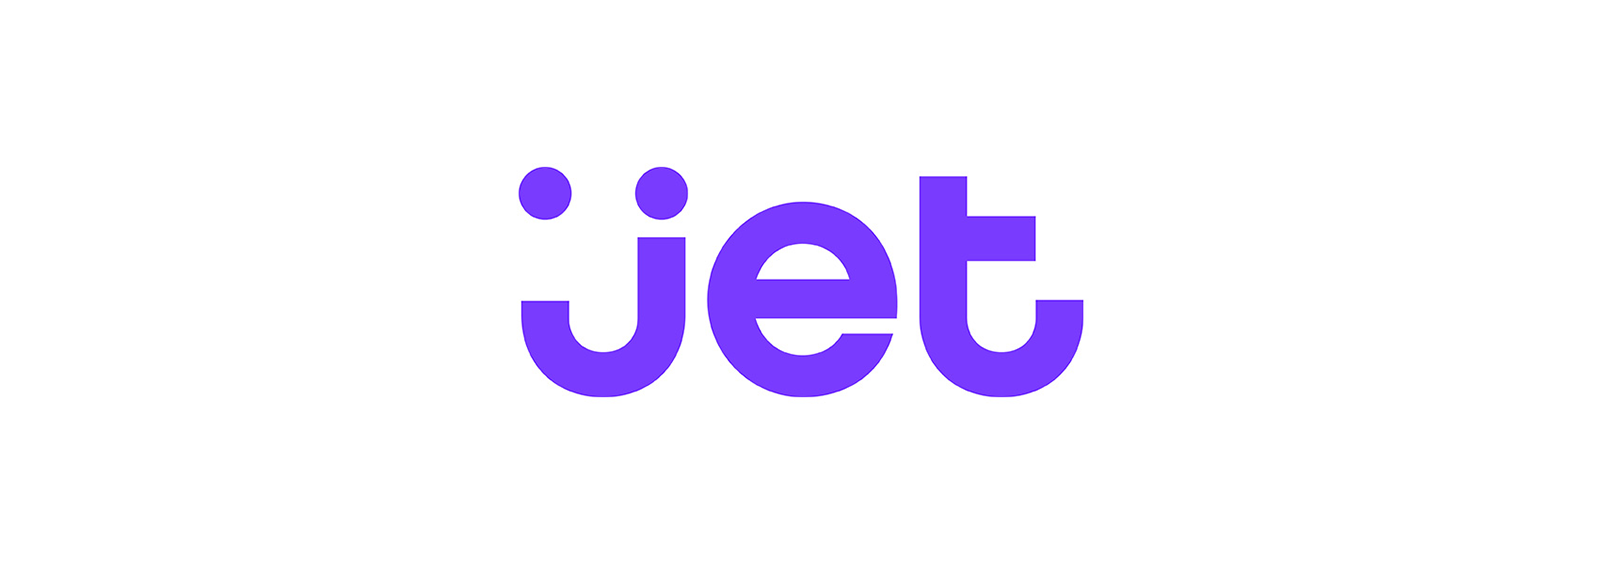 0_1_0000s_0038_Jet.png